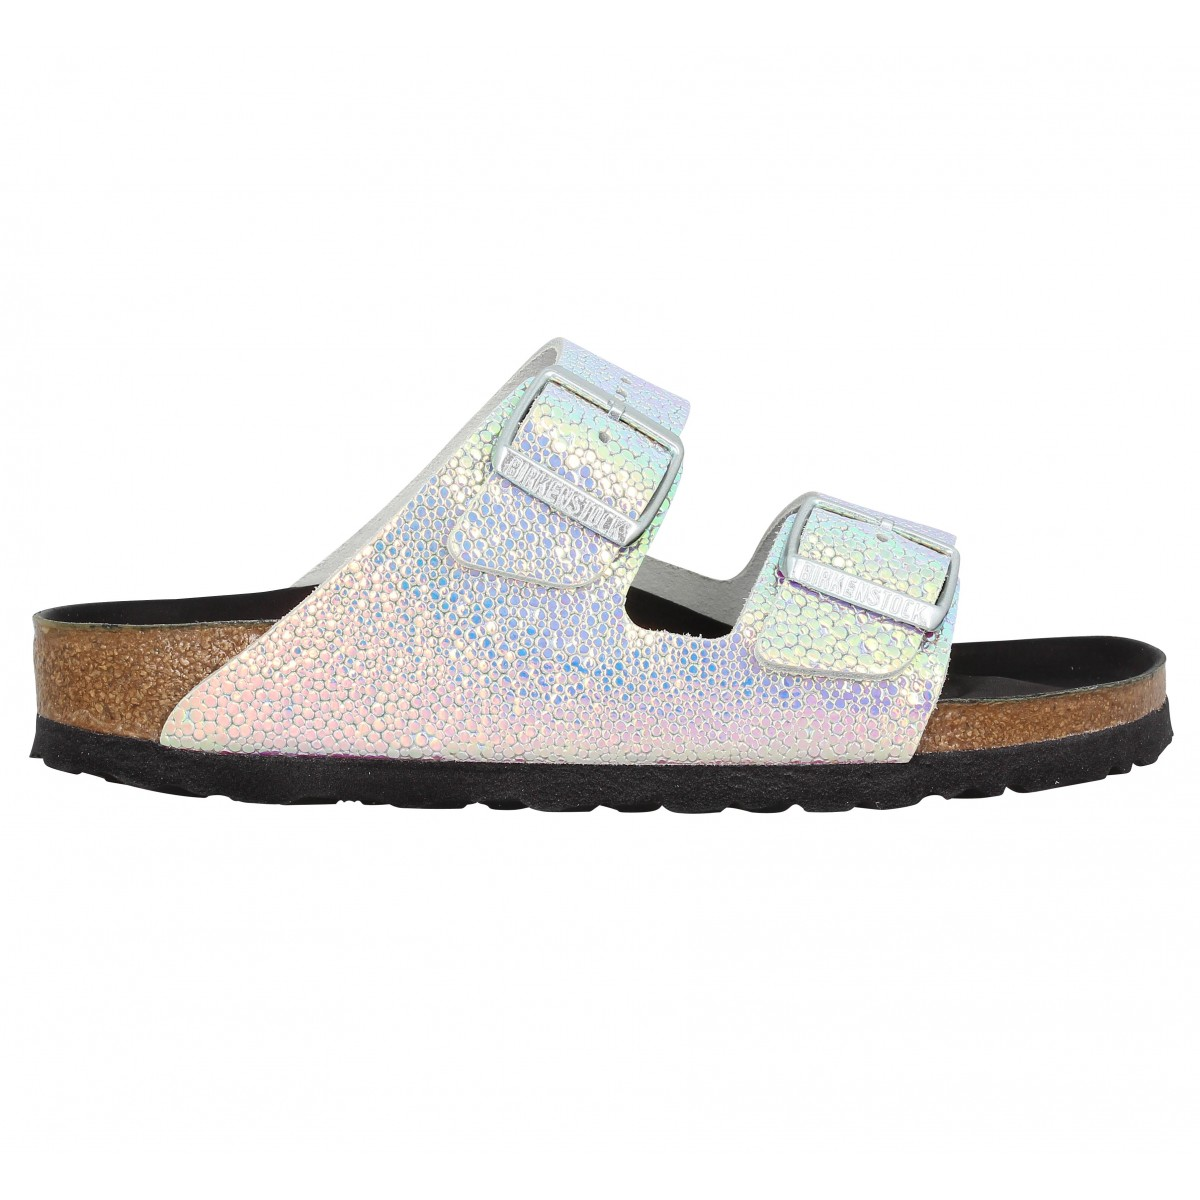 soldes birkenstock arizona cuir femme silver black femme fanny chaussures. Black Bedroom Furniture Sets. Home Design Ideas